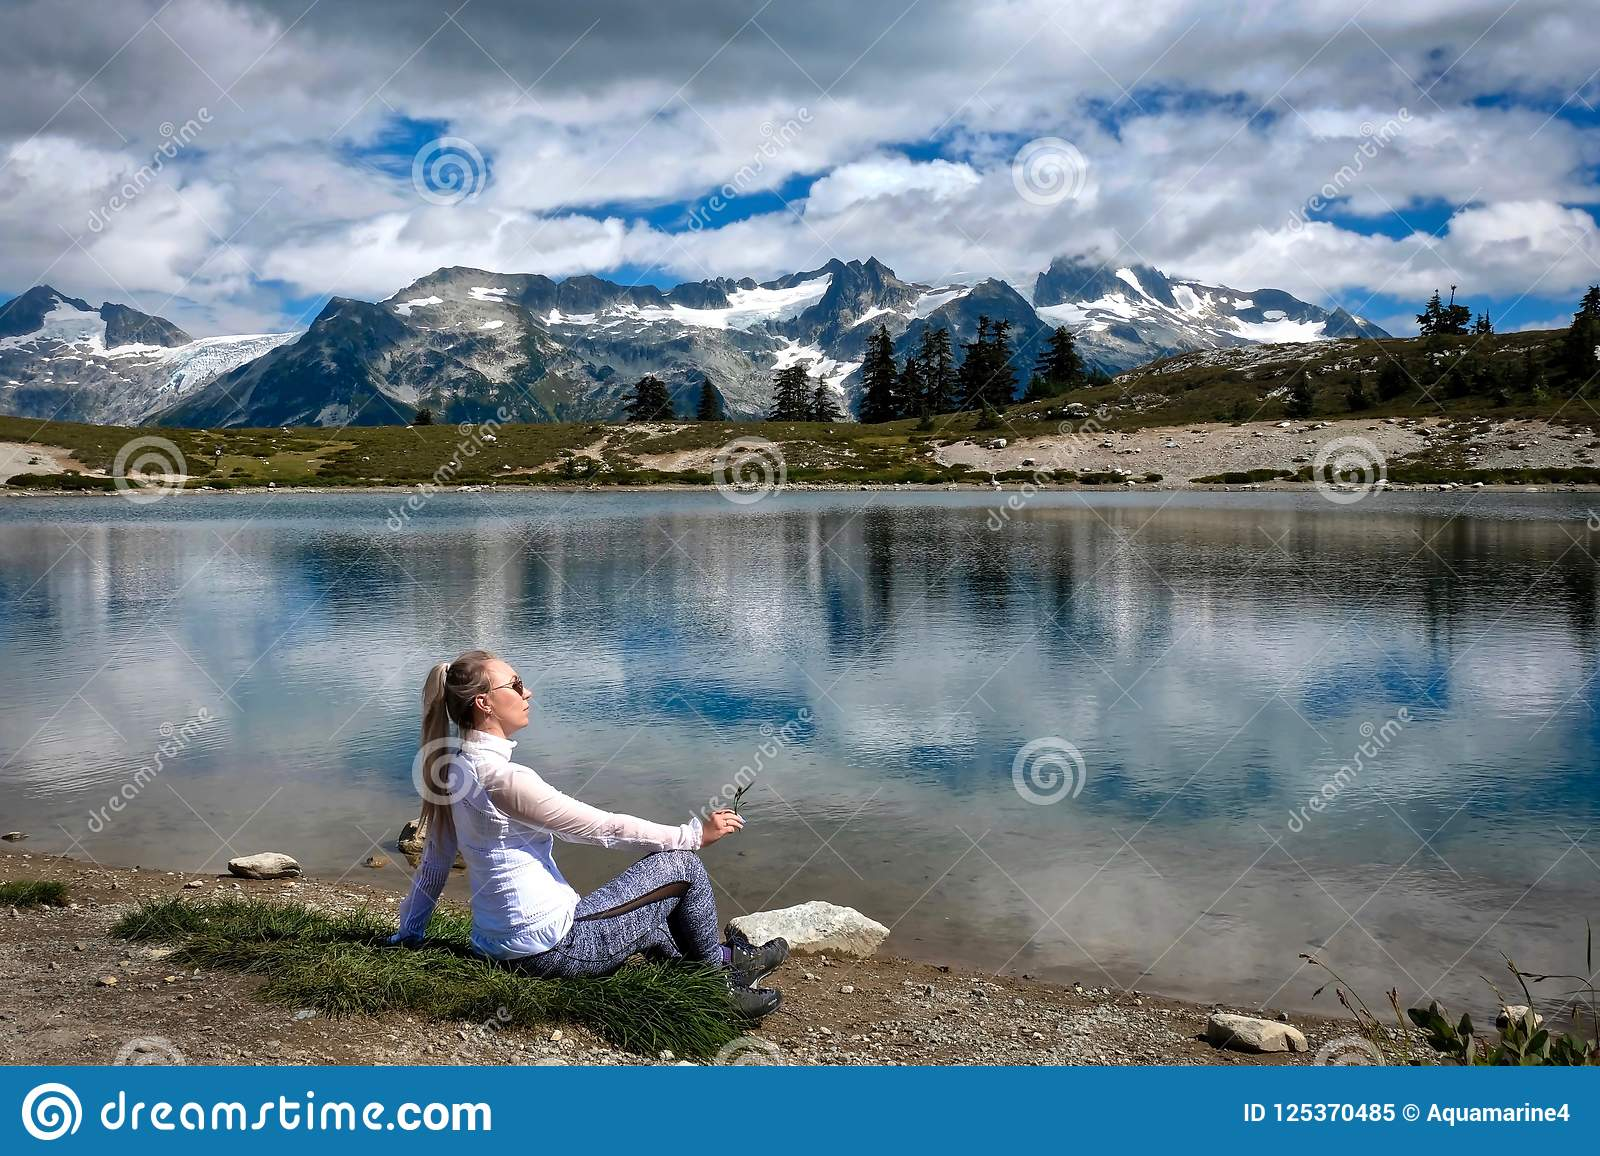 Woman on the lake shore meditating and relaxing. Beautiful view of mountains and reflections in the lake.